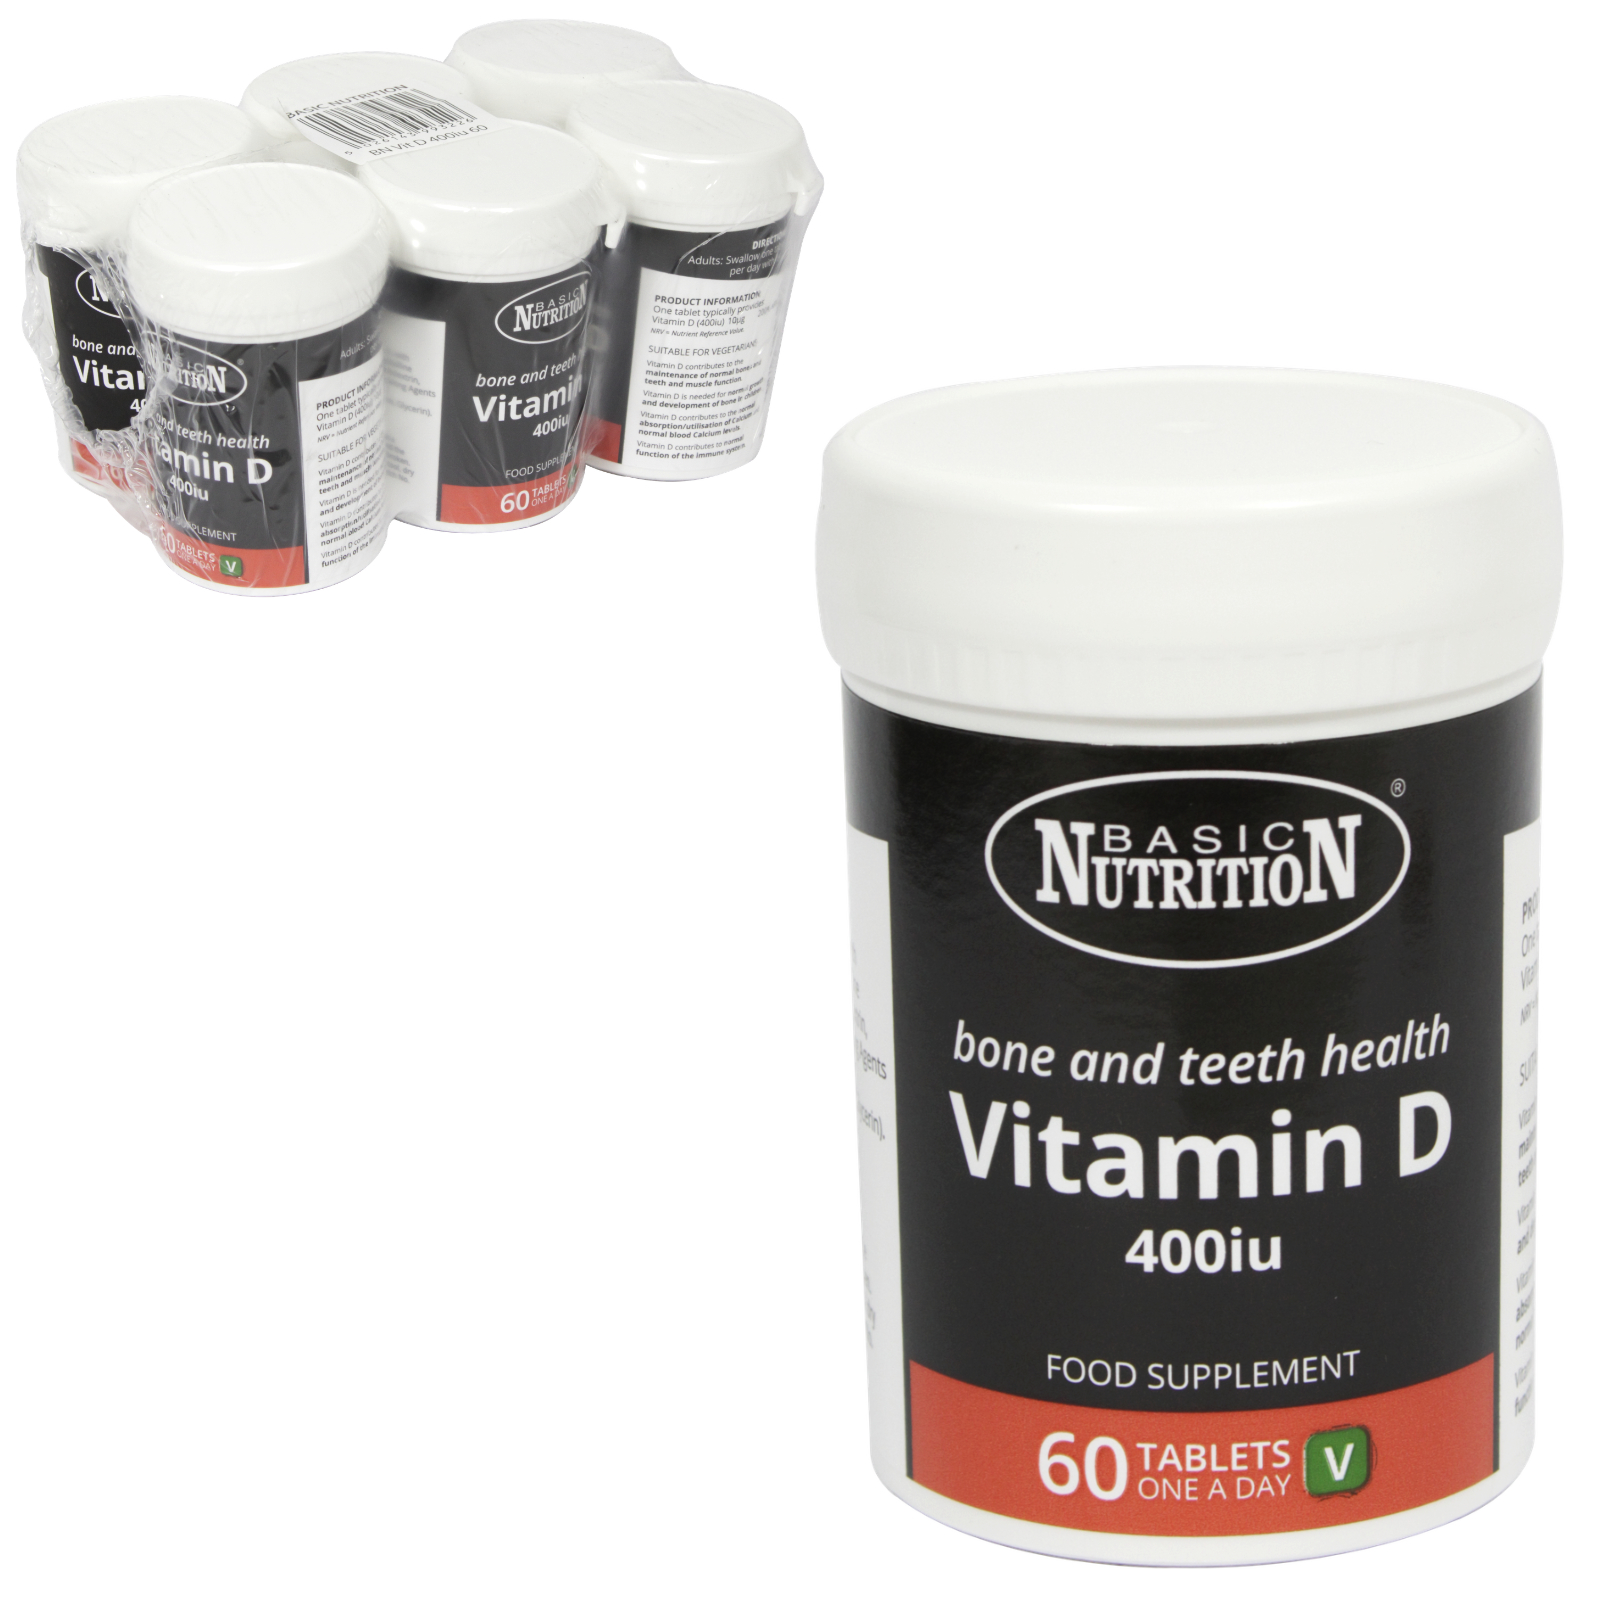 BASIC NUTRITION VIT D 60X400IU X6